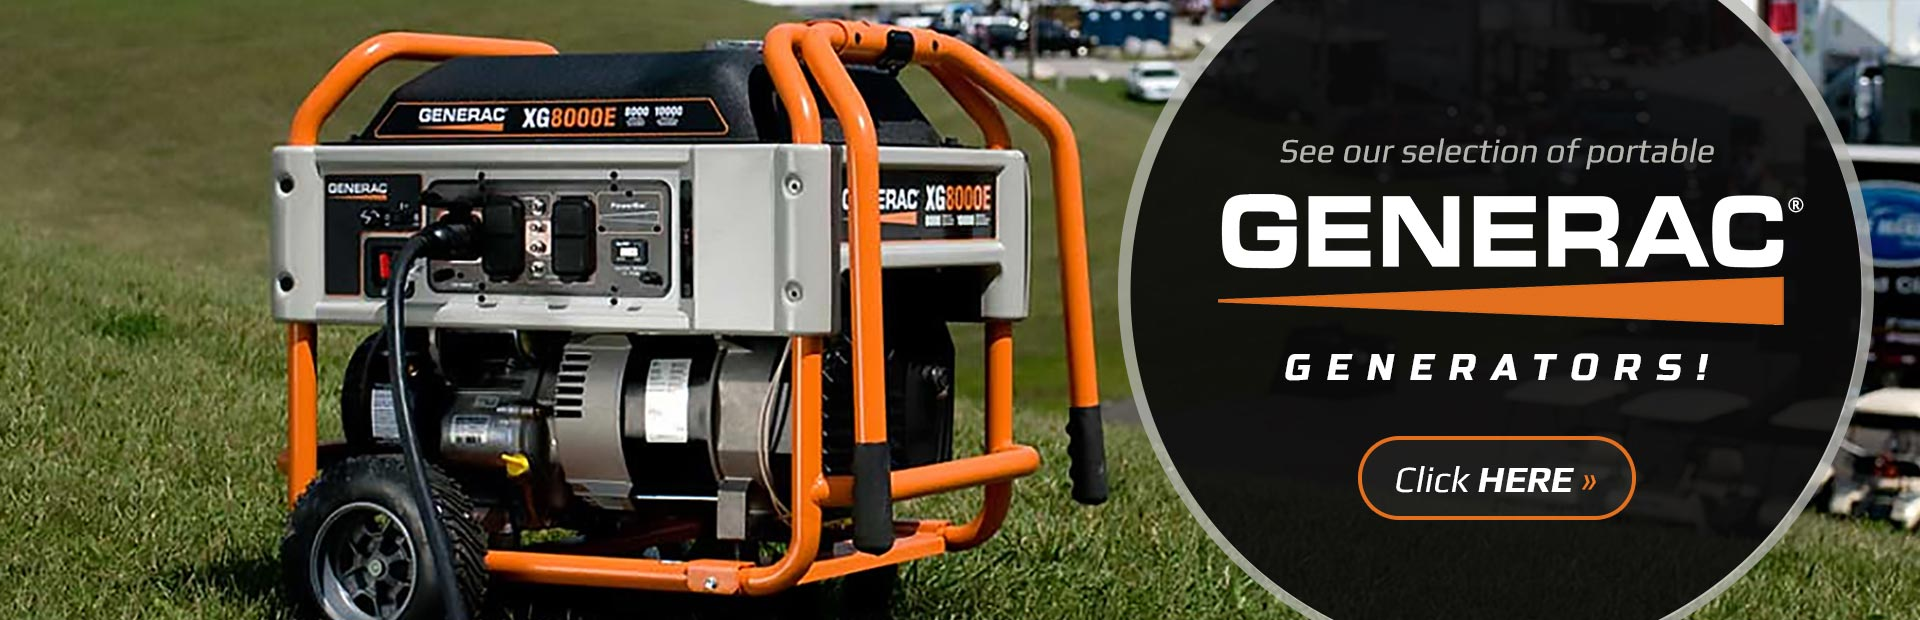 Generac Portable Generators: Click here to view the models.